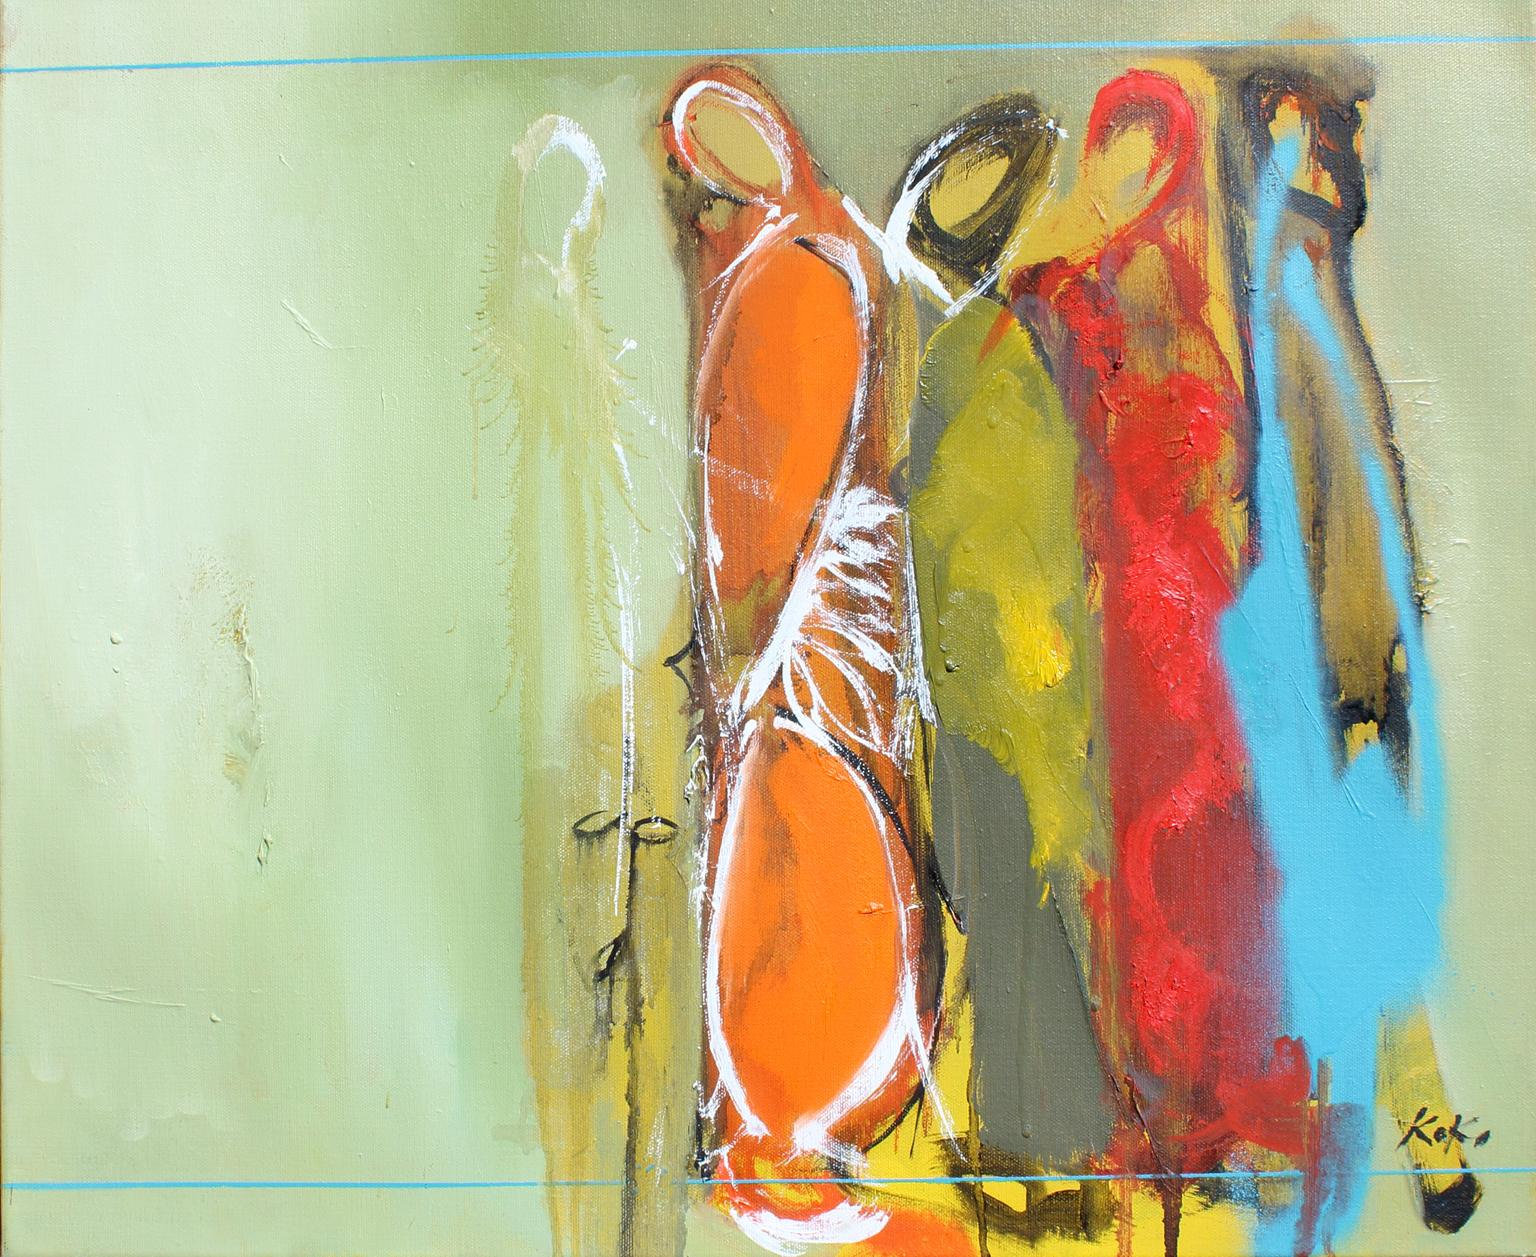 Identity, 20x24 in., oil on canvas. Original  modern abstract expressionist.